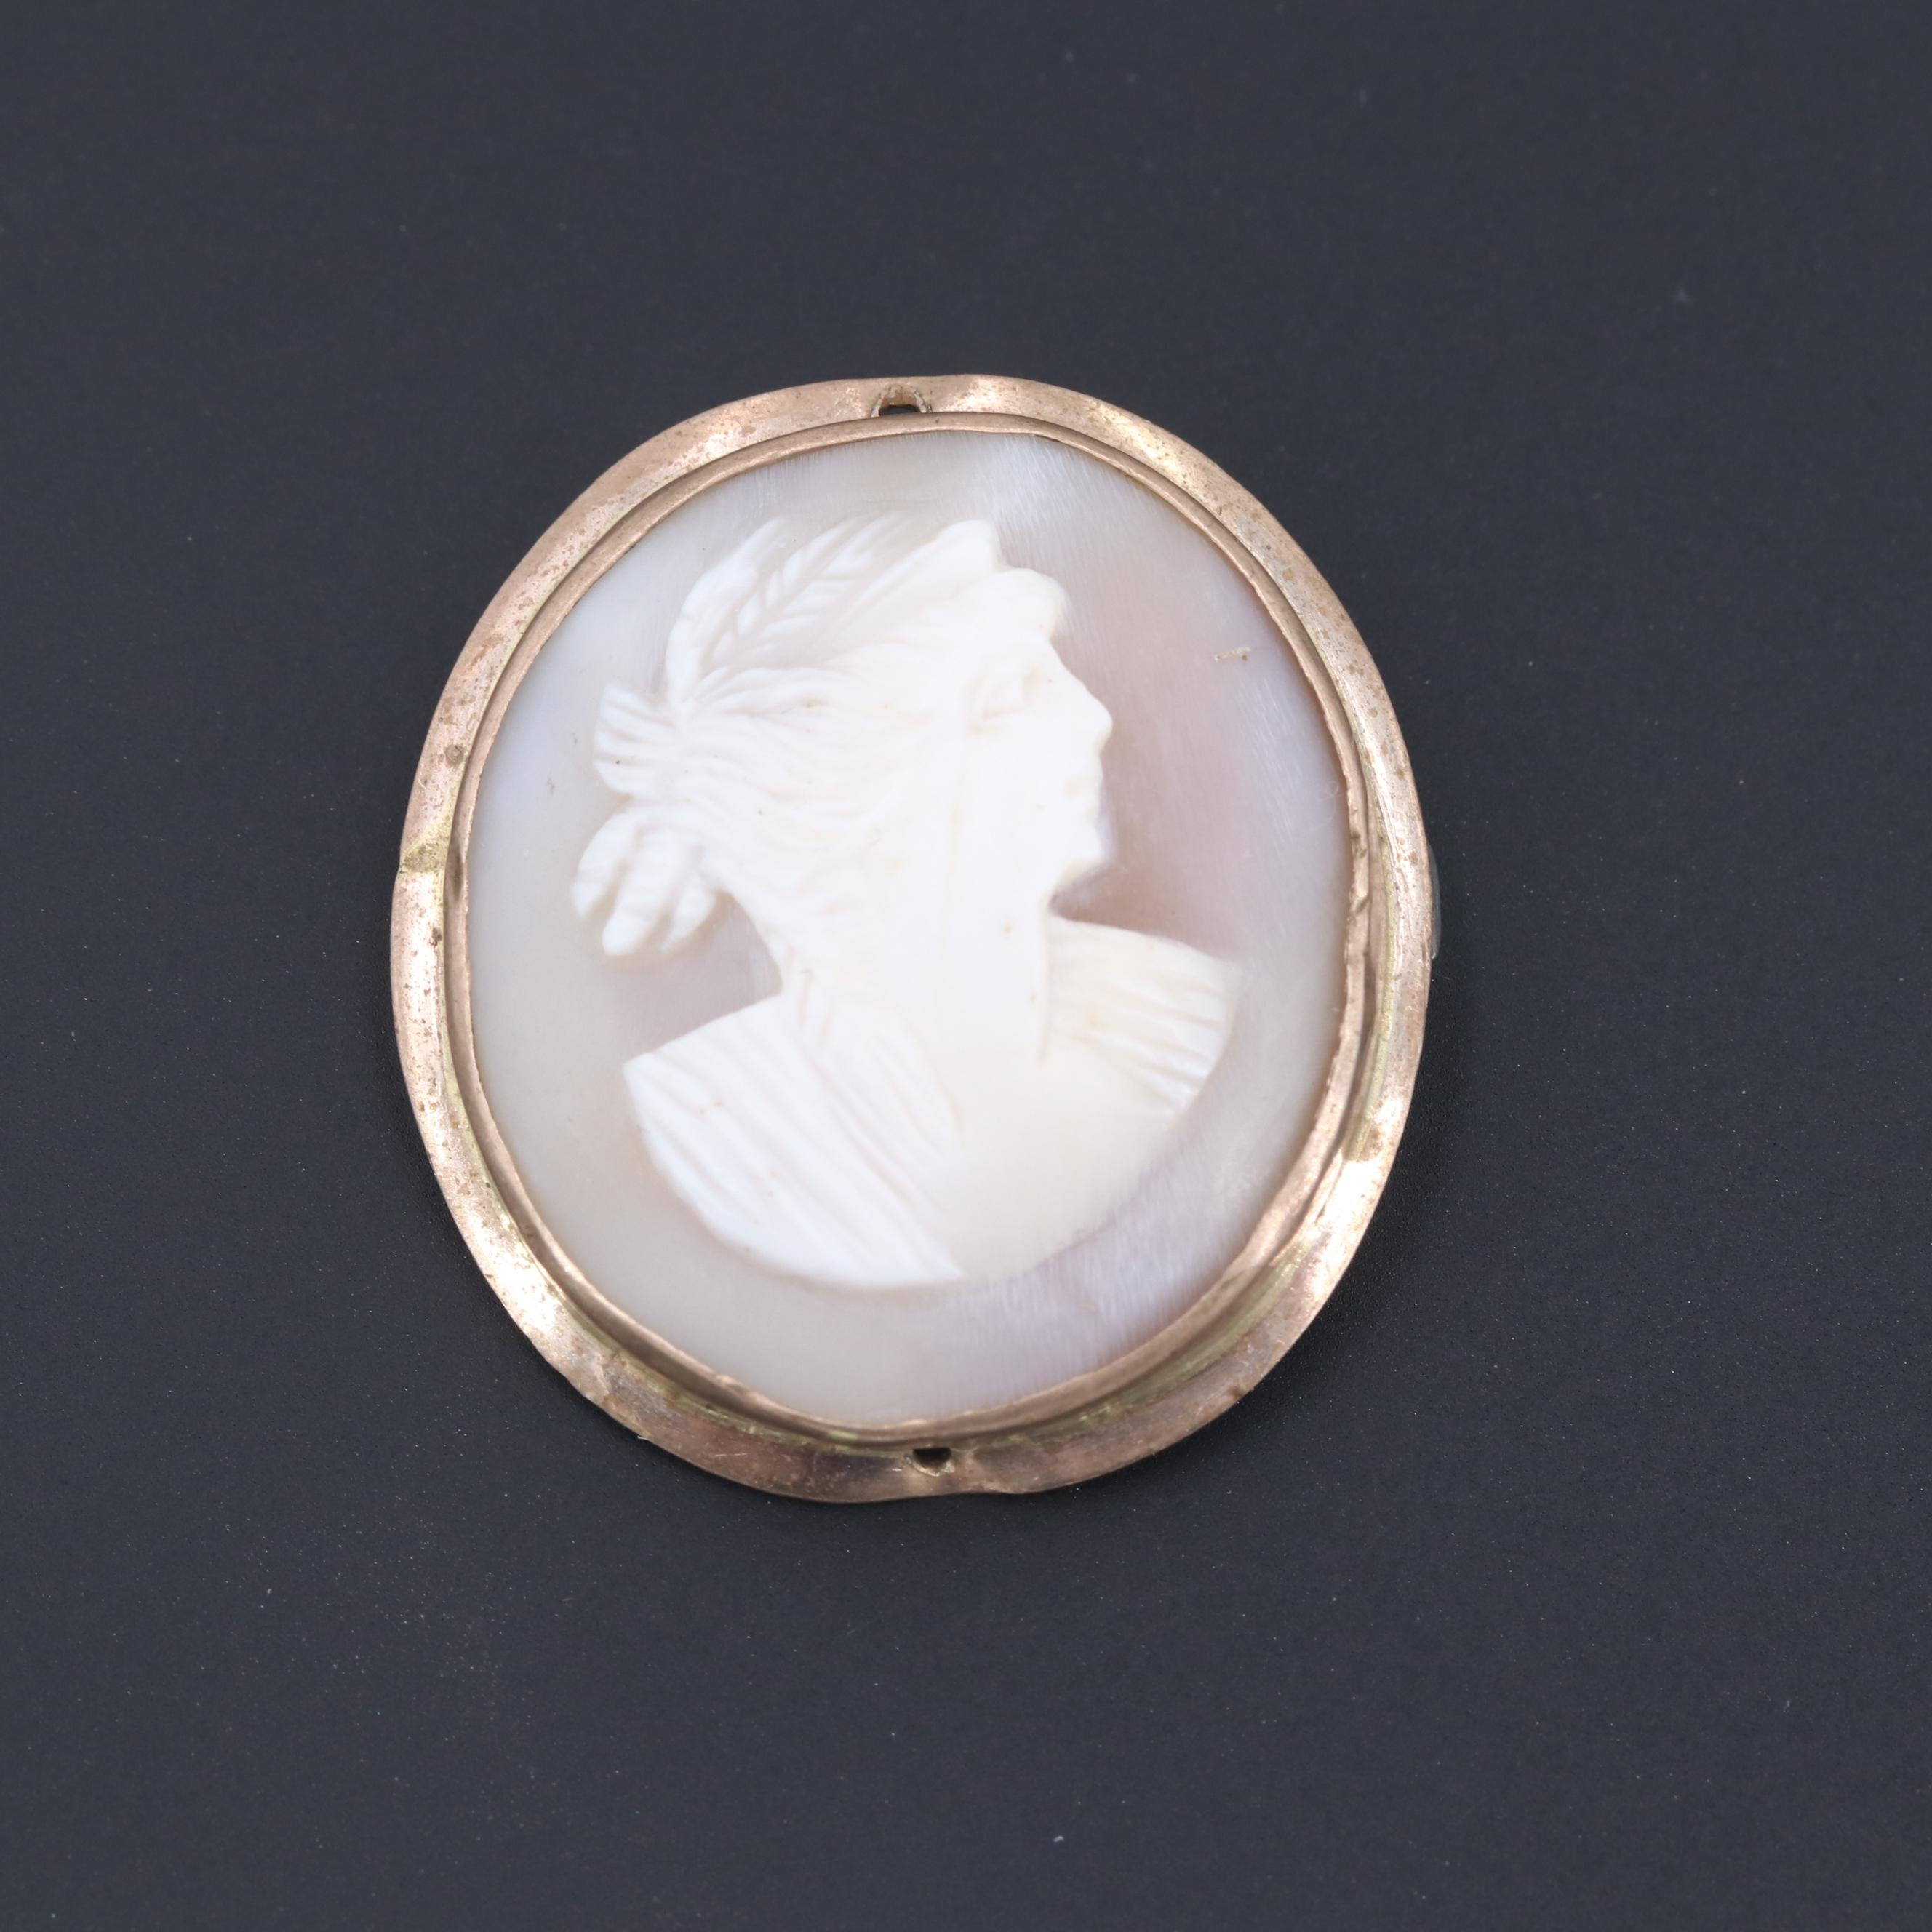 Gold Tone Shell Cameo Brooch